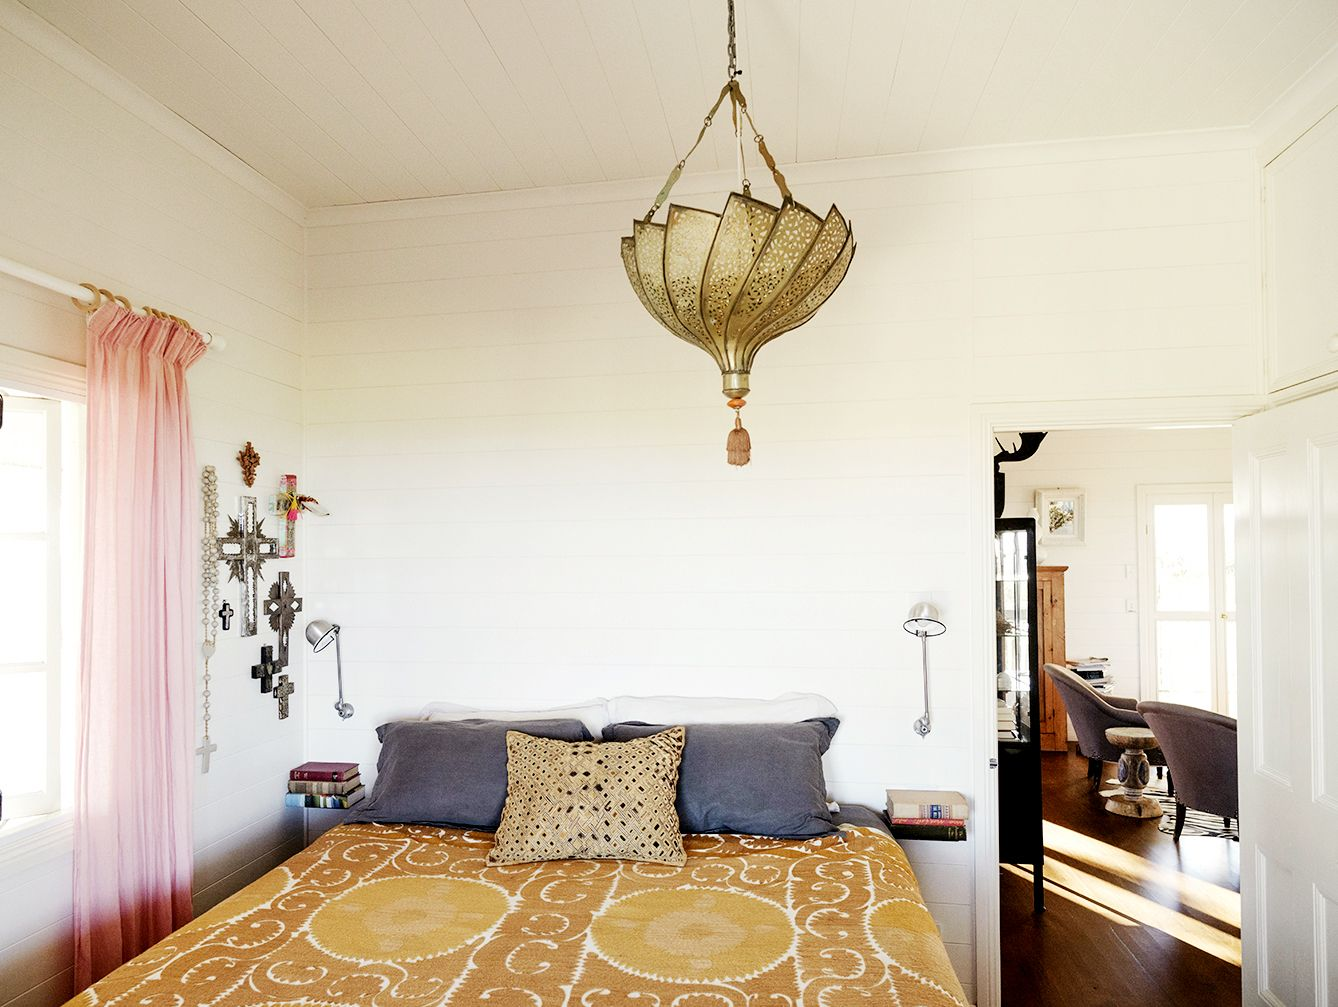 Mustard yellow throw on bed in Moroccan-themed bedroom